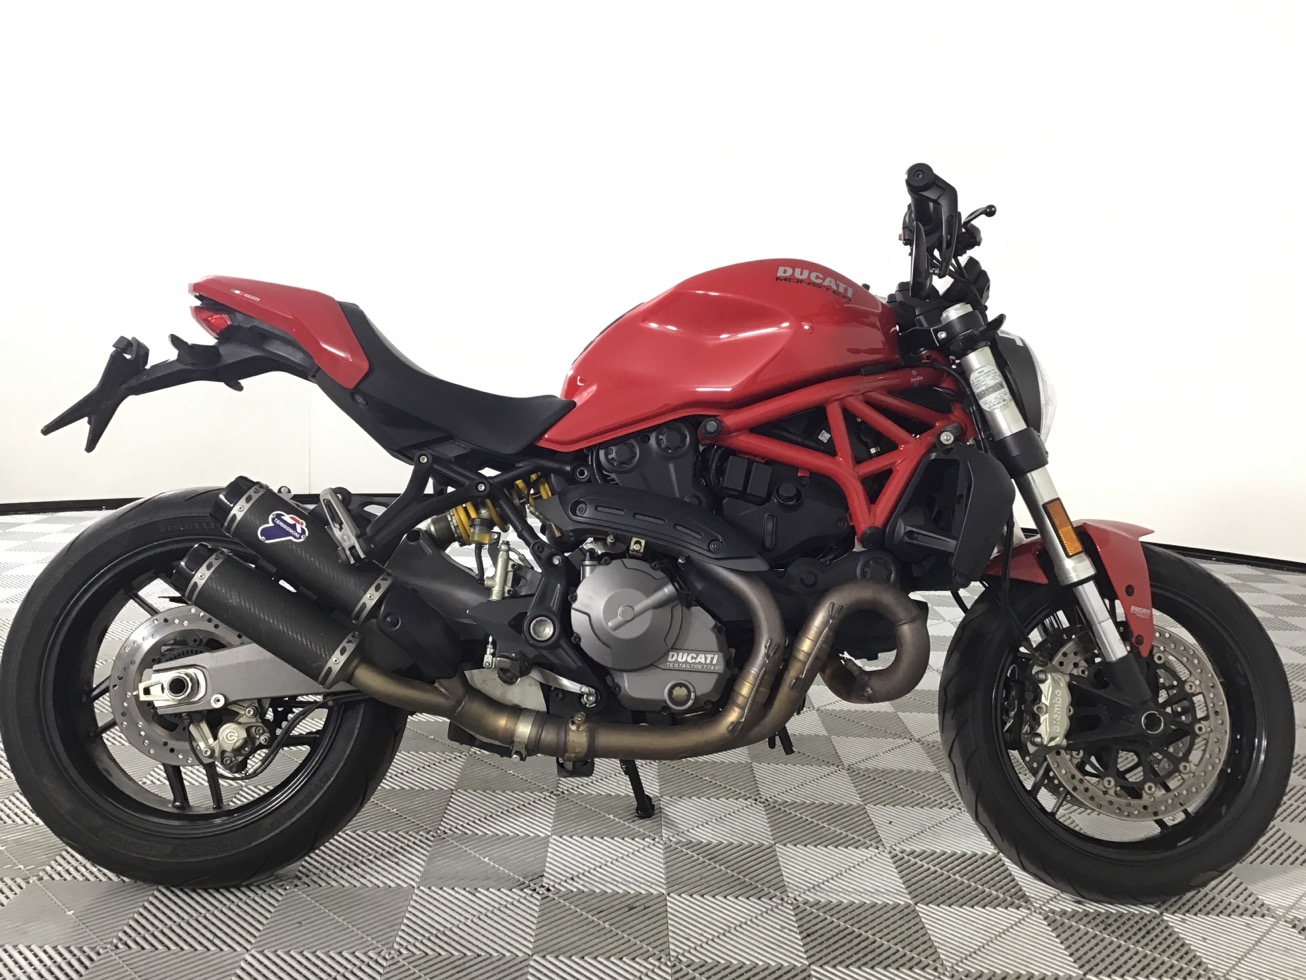 2018 Ducati Monster 821 Review • Total Motorcycle